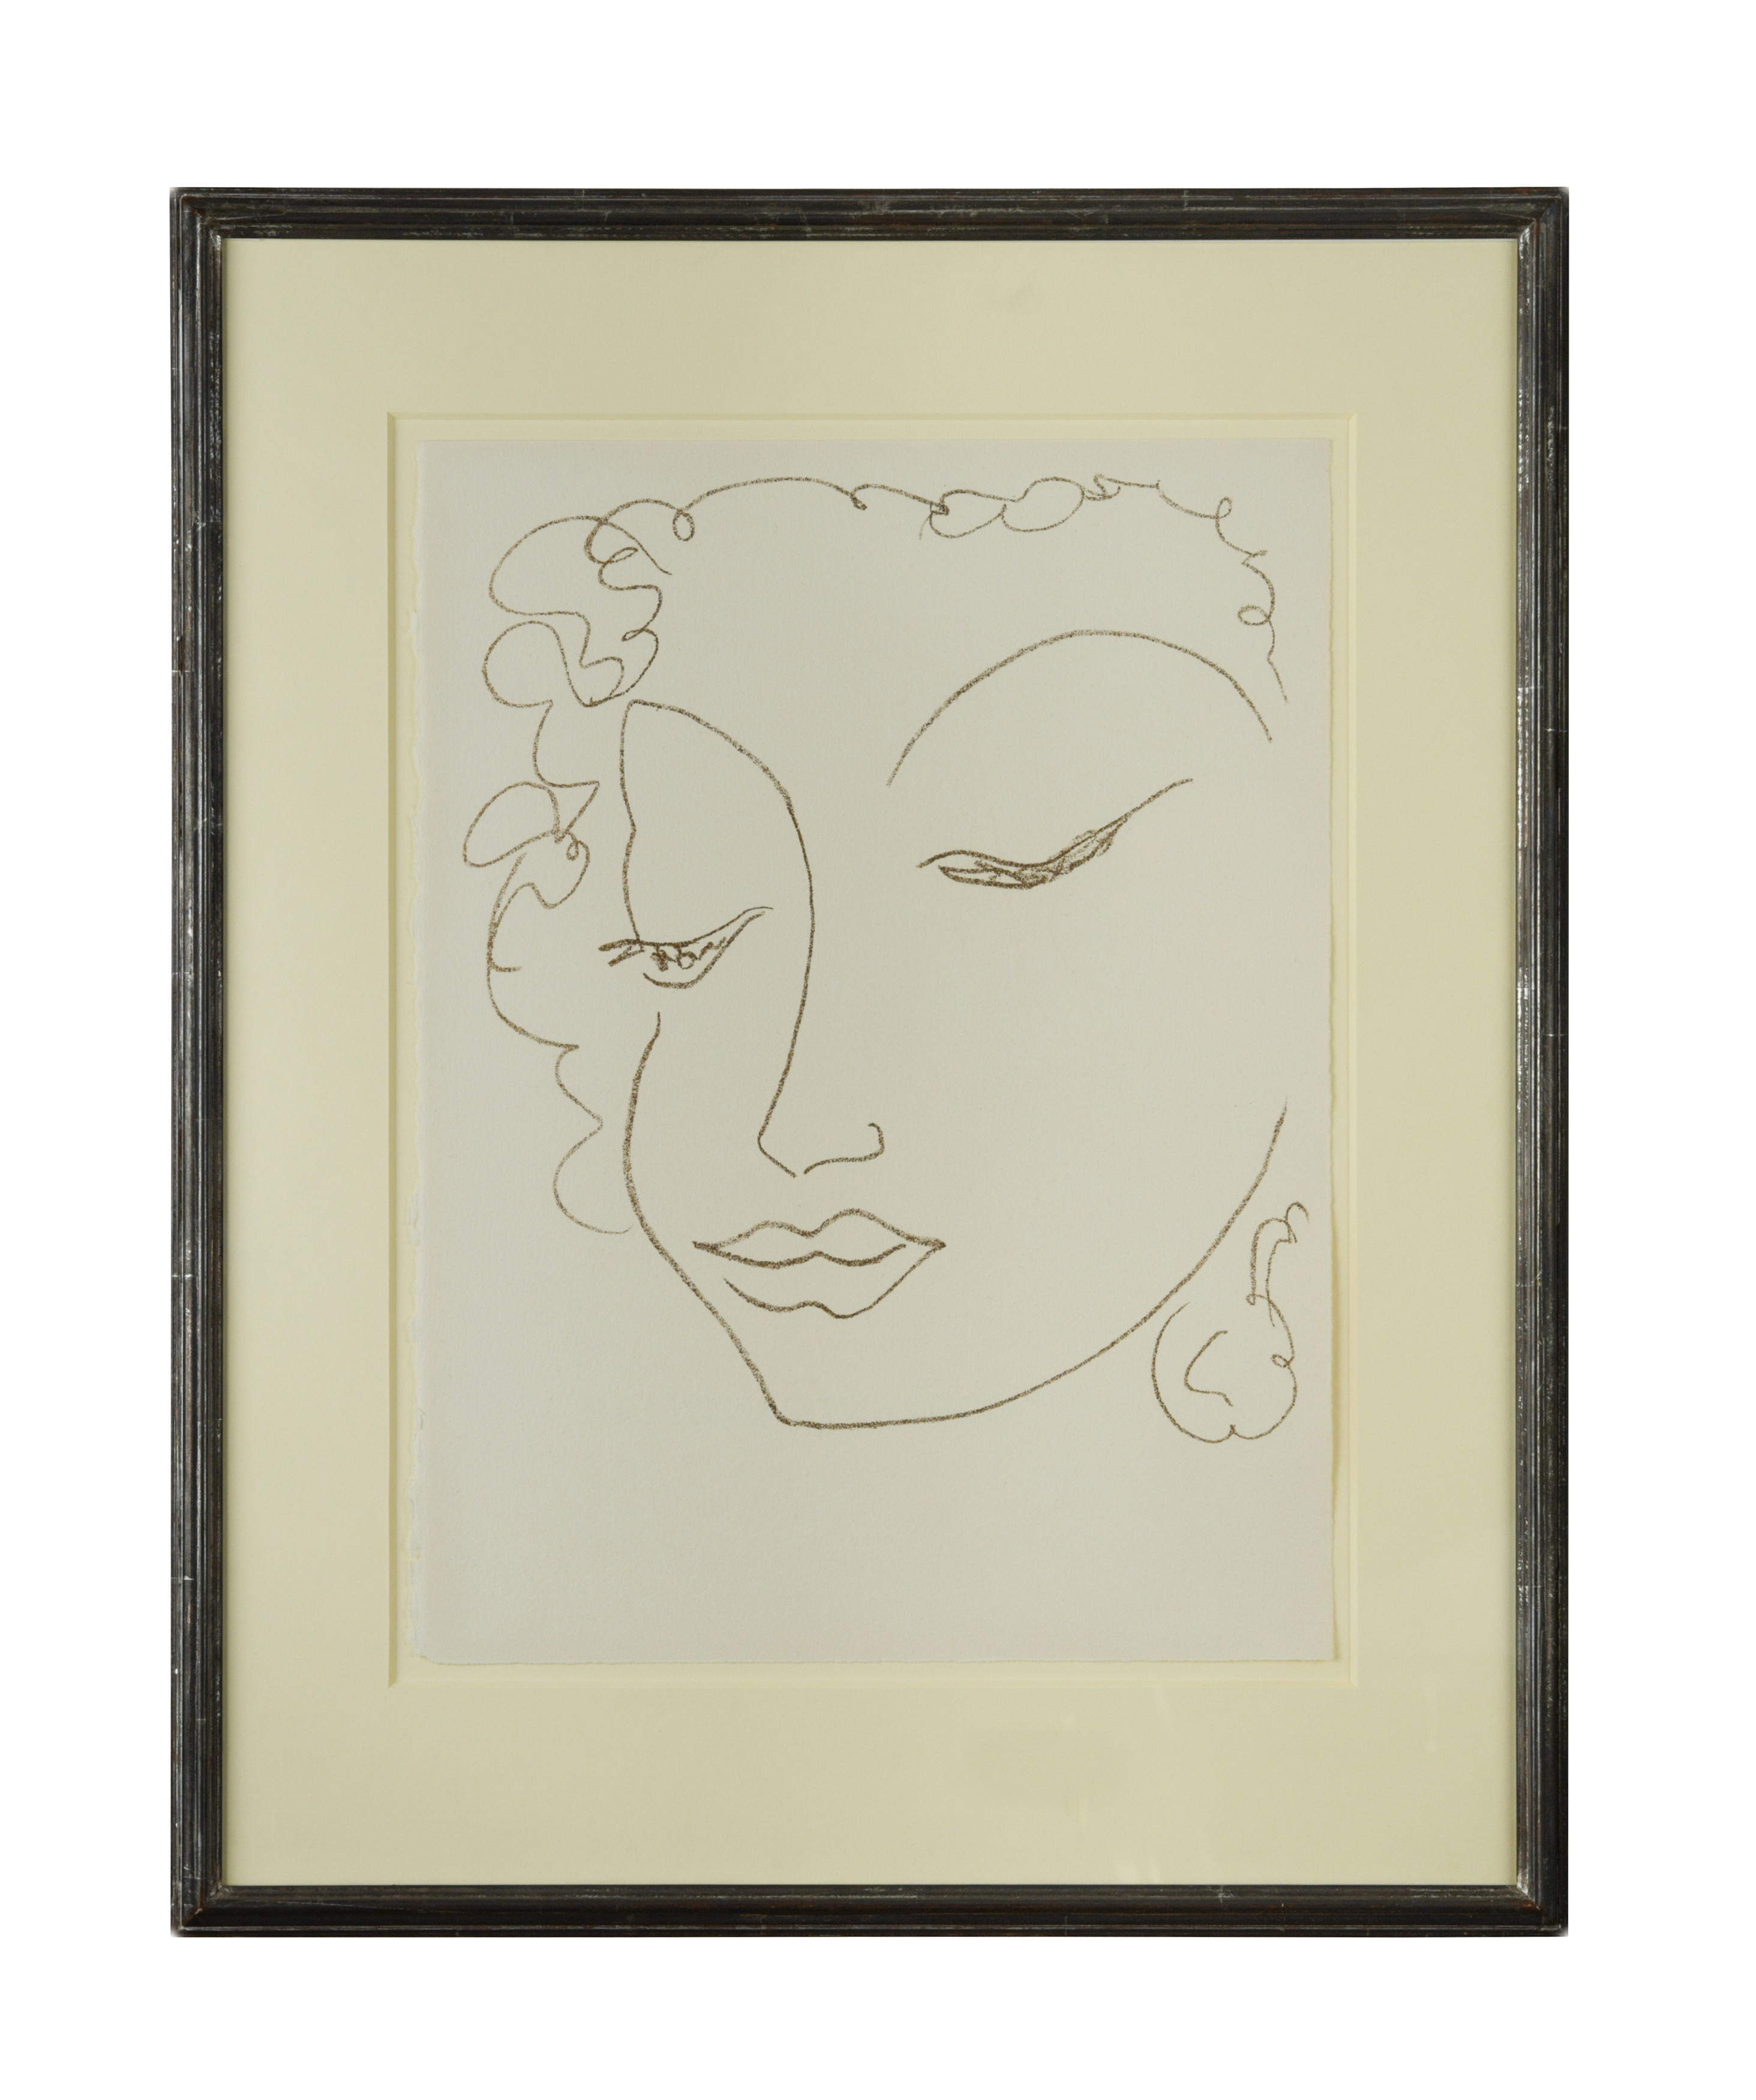 § After Henri Matisse (French 1869-1954)